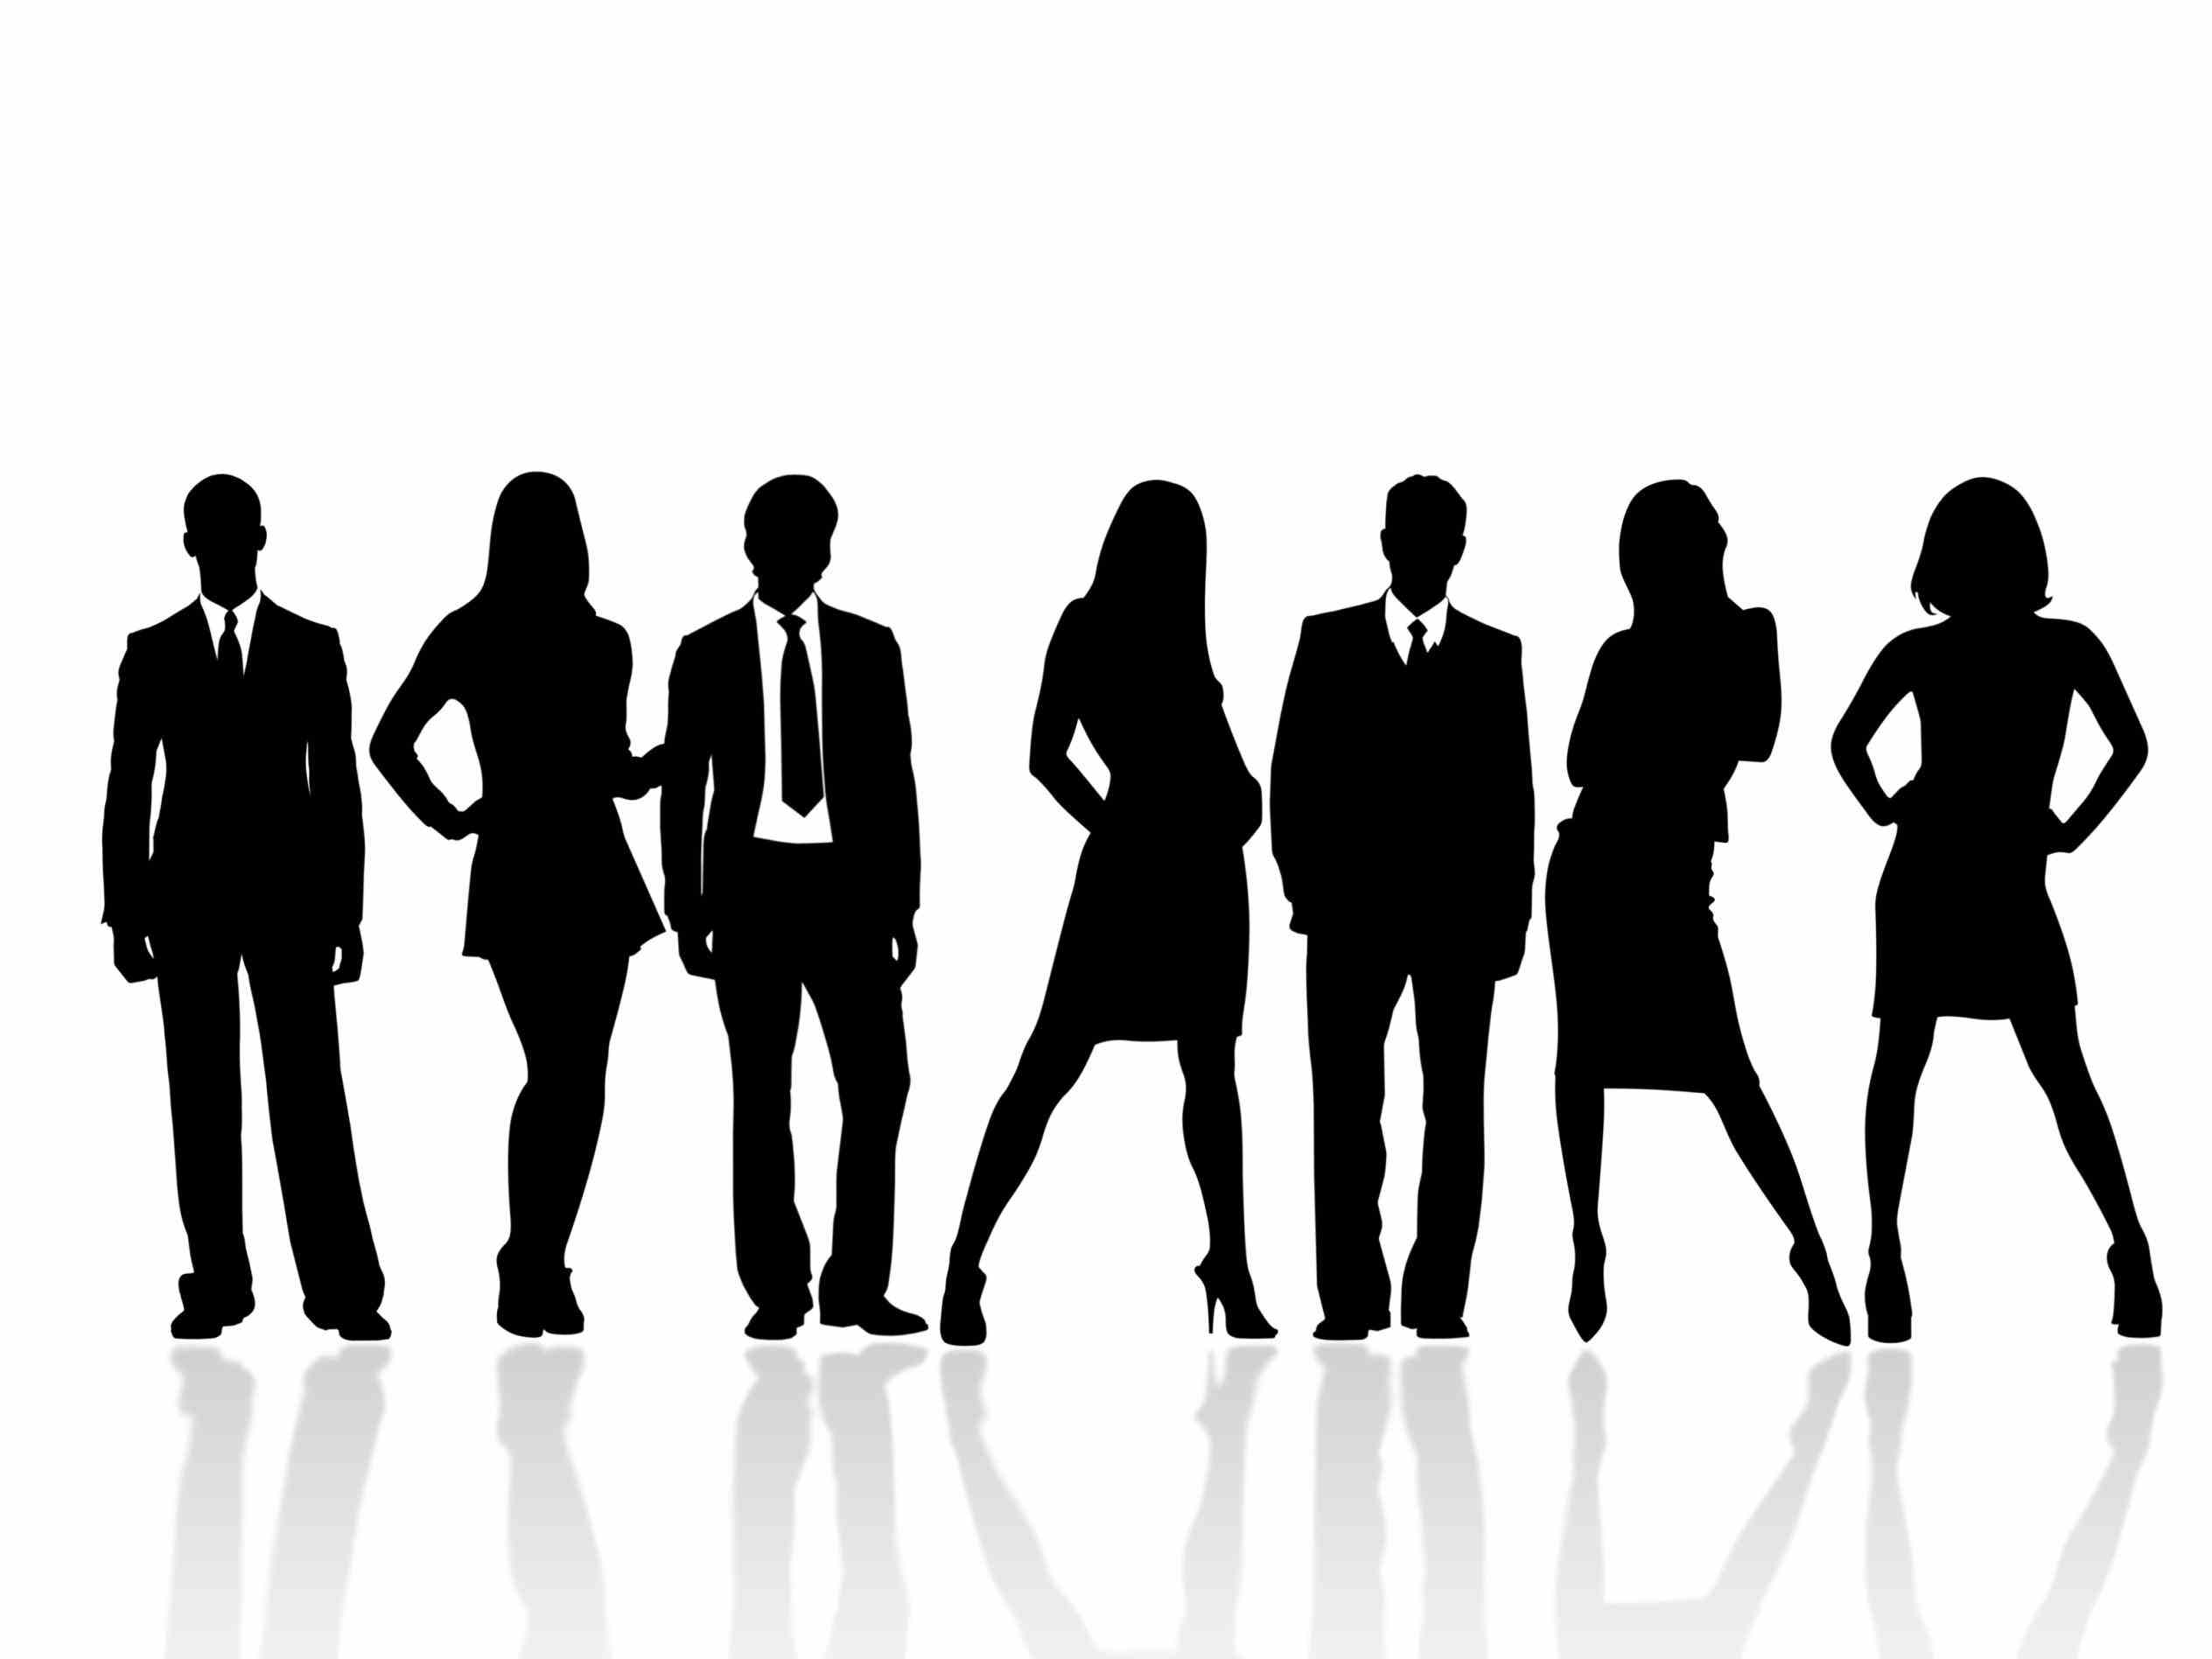 business people silhouette png.